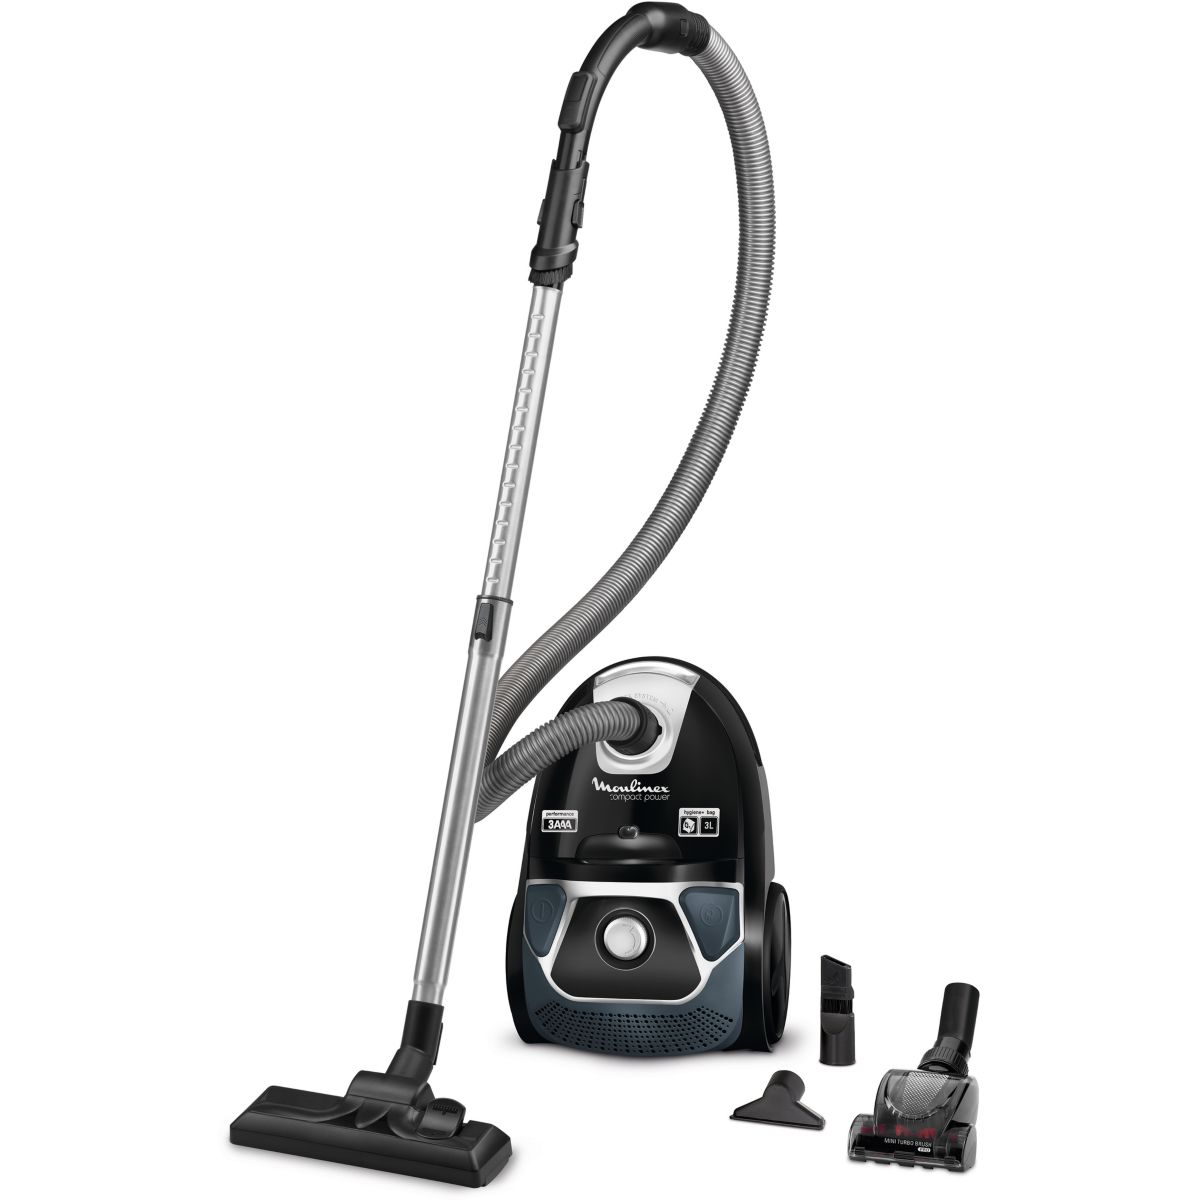 Aspirateur avec sac MOULINEX MO3985PA Compact power animal care (photo)